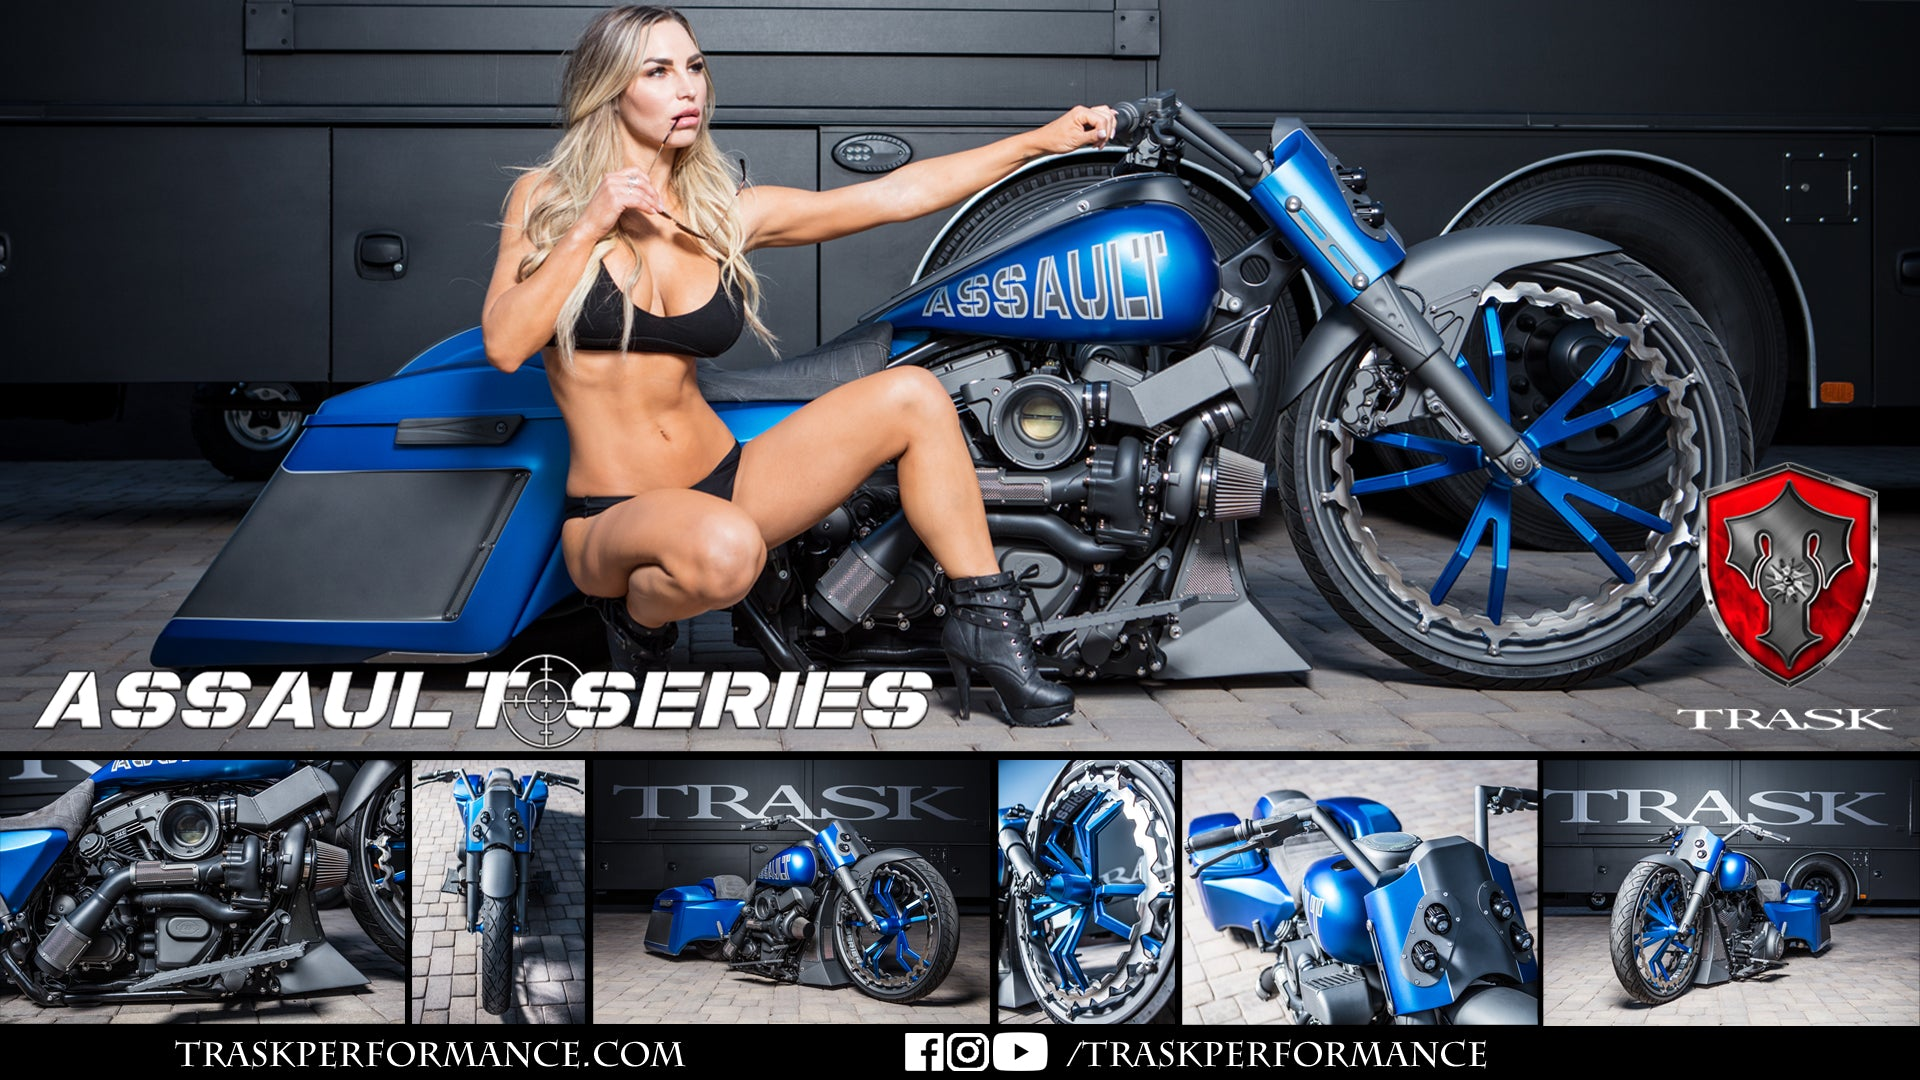 Trask Performance Assault Series Turbo Harley-Davidson motorcycles